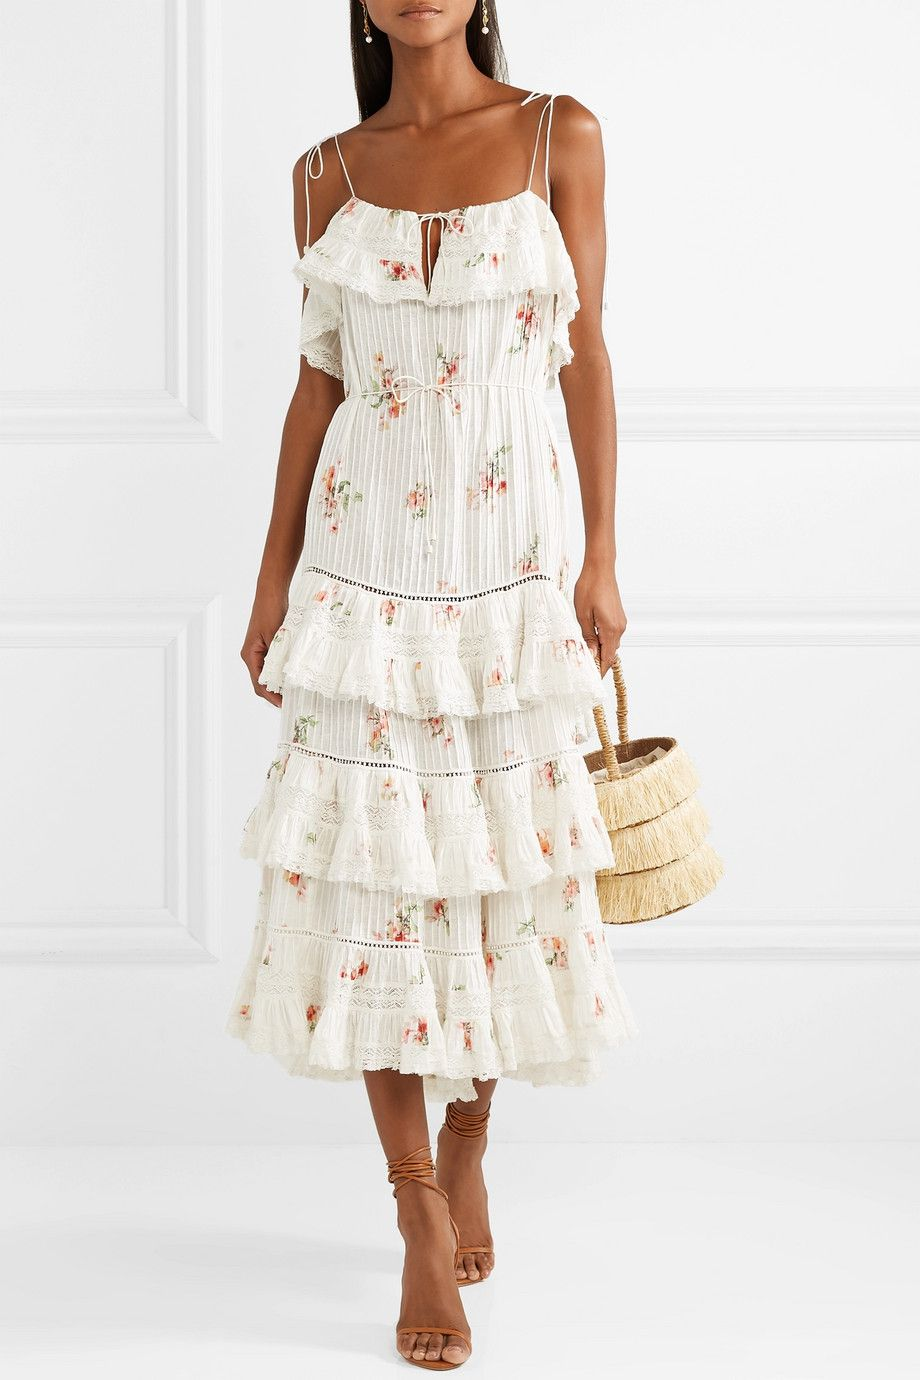 8220137bbaf Zimmermann   Heathers lace-trimmed tiered pintucked floral-print  cotton-voile dress   NET-A-PORTER.COM